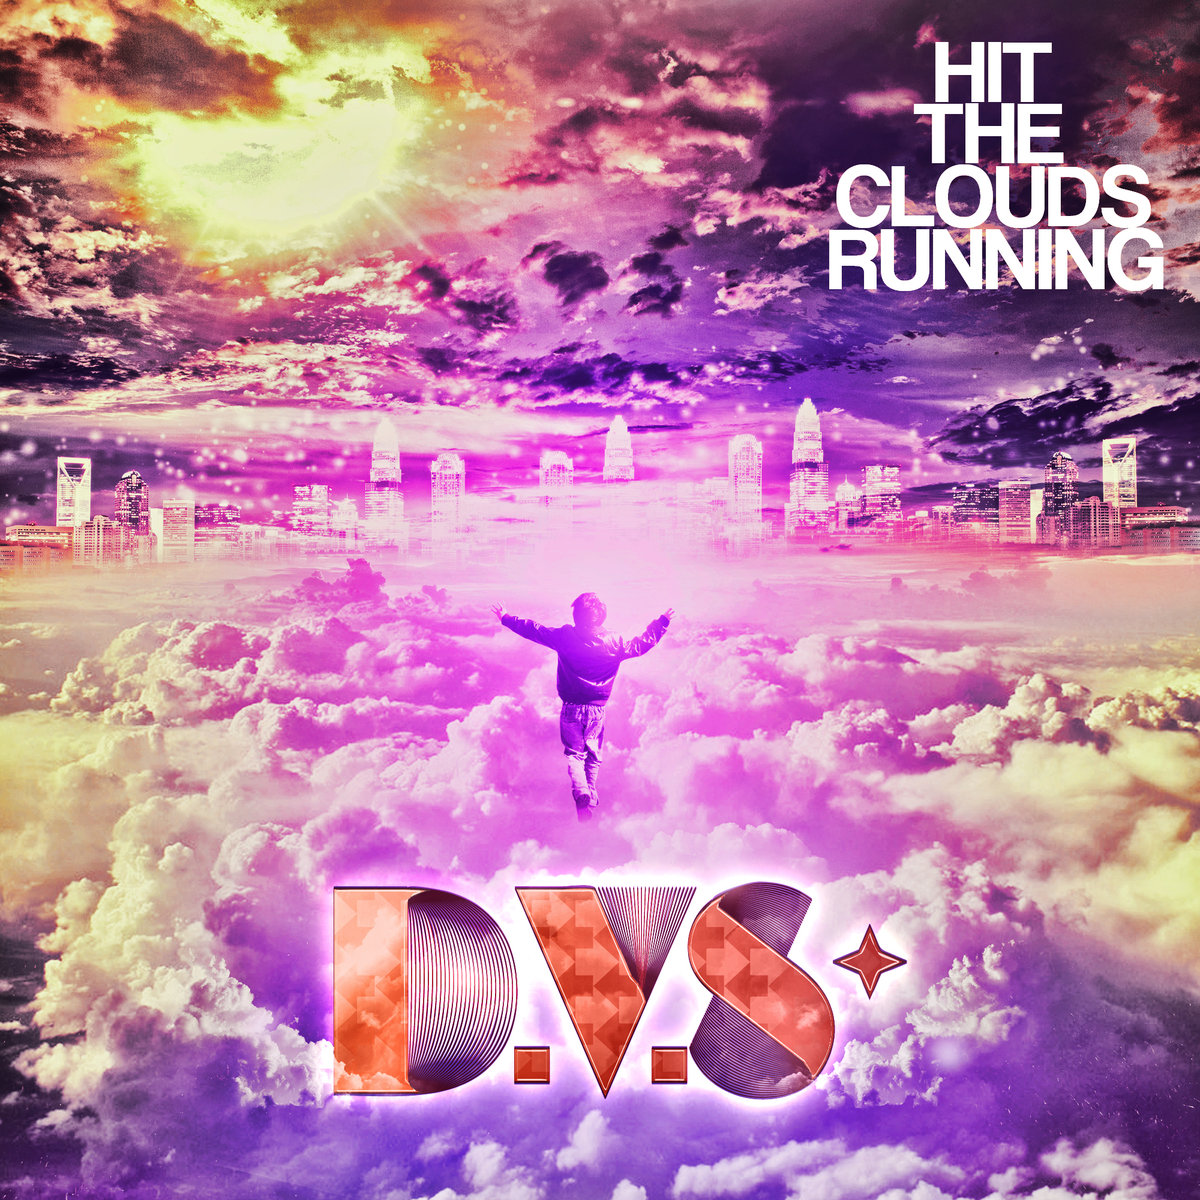 D.V.S* - Peppermint Sky @ 'Hit The Clouds Running' album (electronica, guitar)